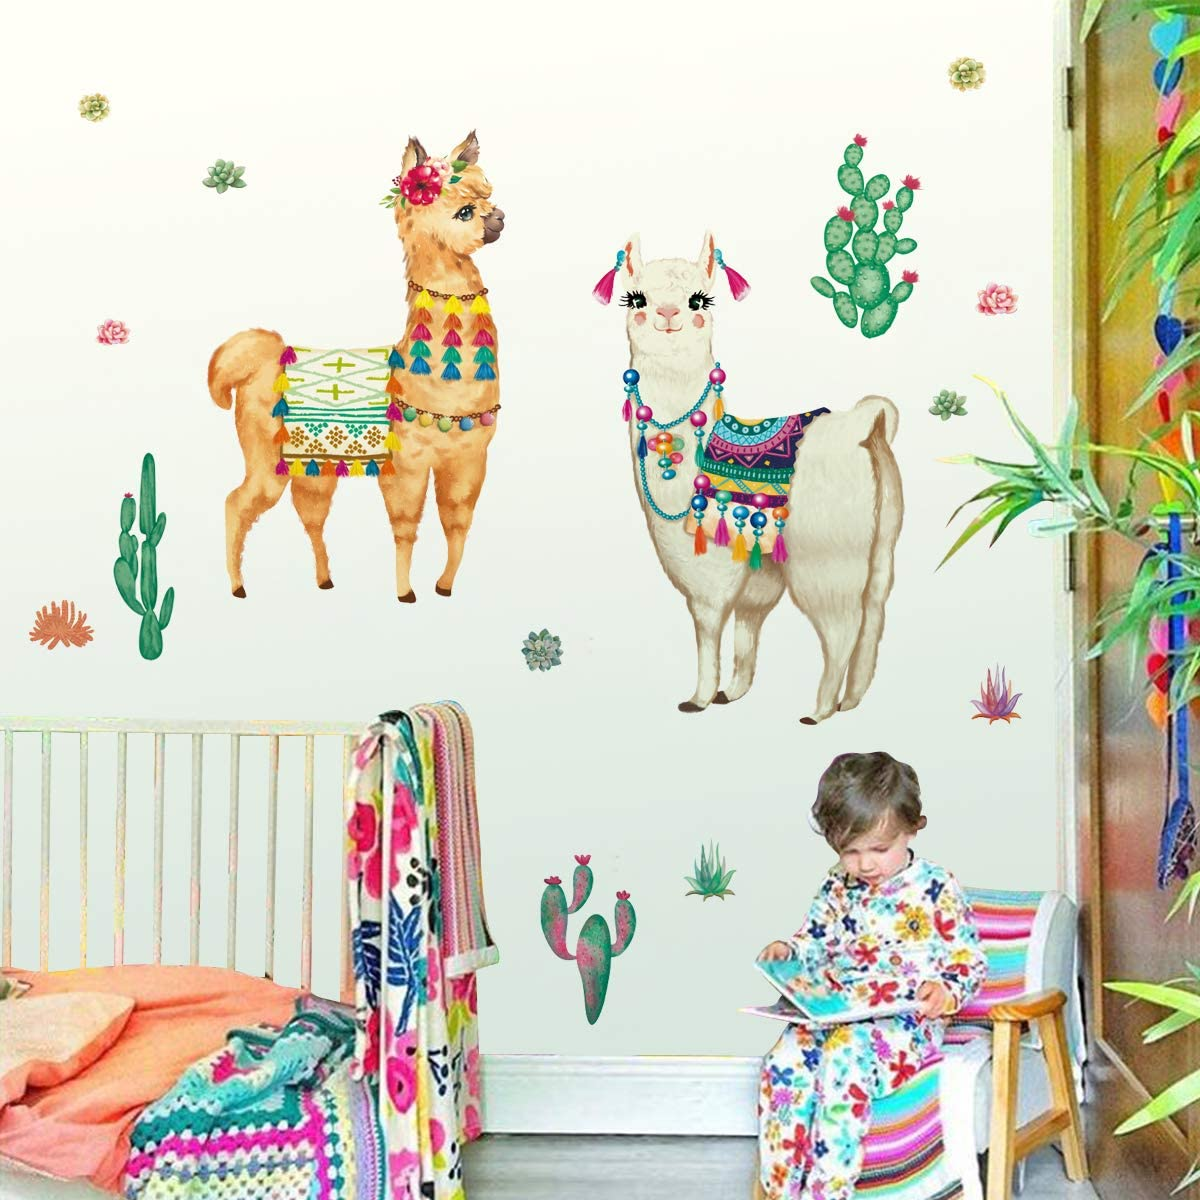 decalmile Large Llama Wall Decals Tropical Cactus Plants Wall Stickers Baby Nursery Kids Bedroom Living Room Wall Decor (H: 24 Inches)